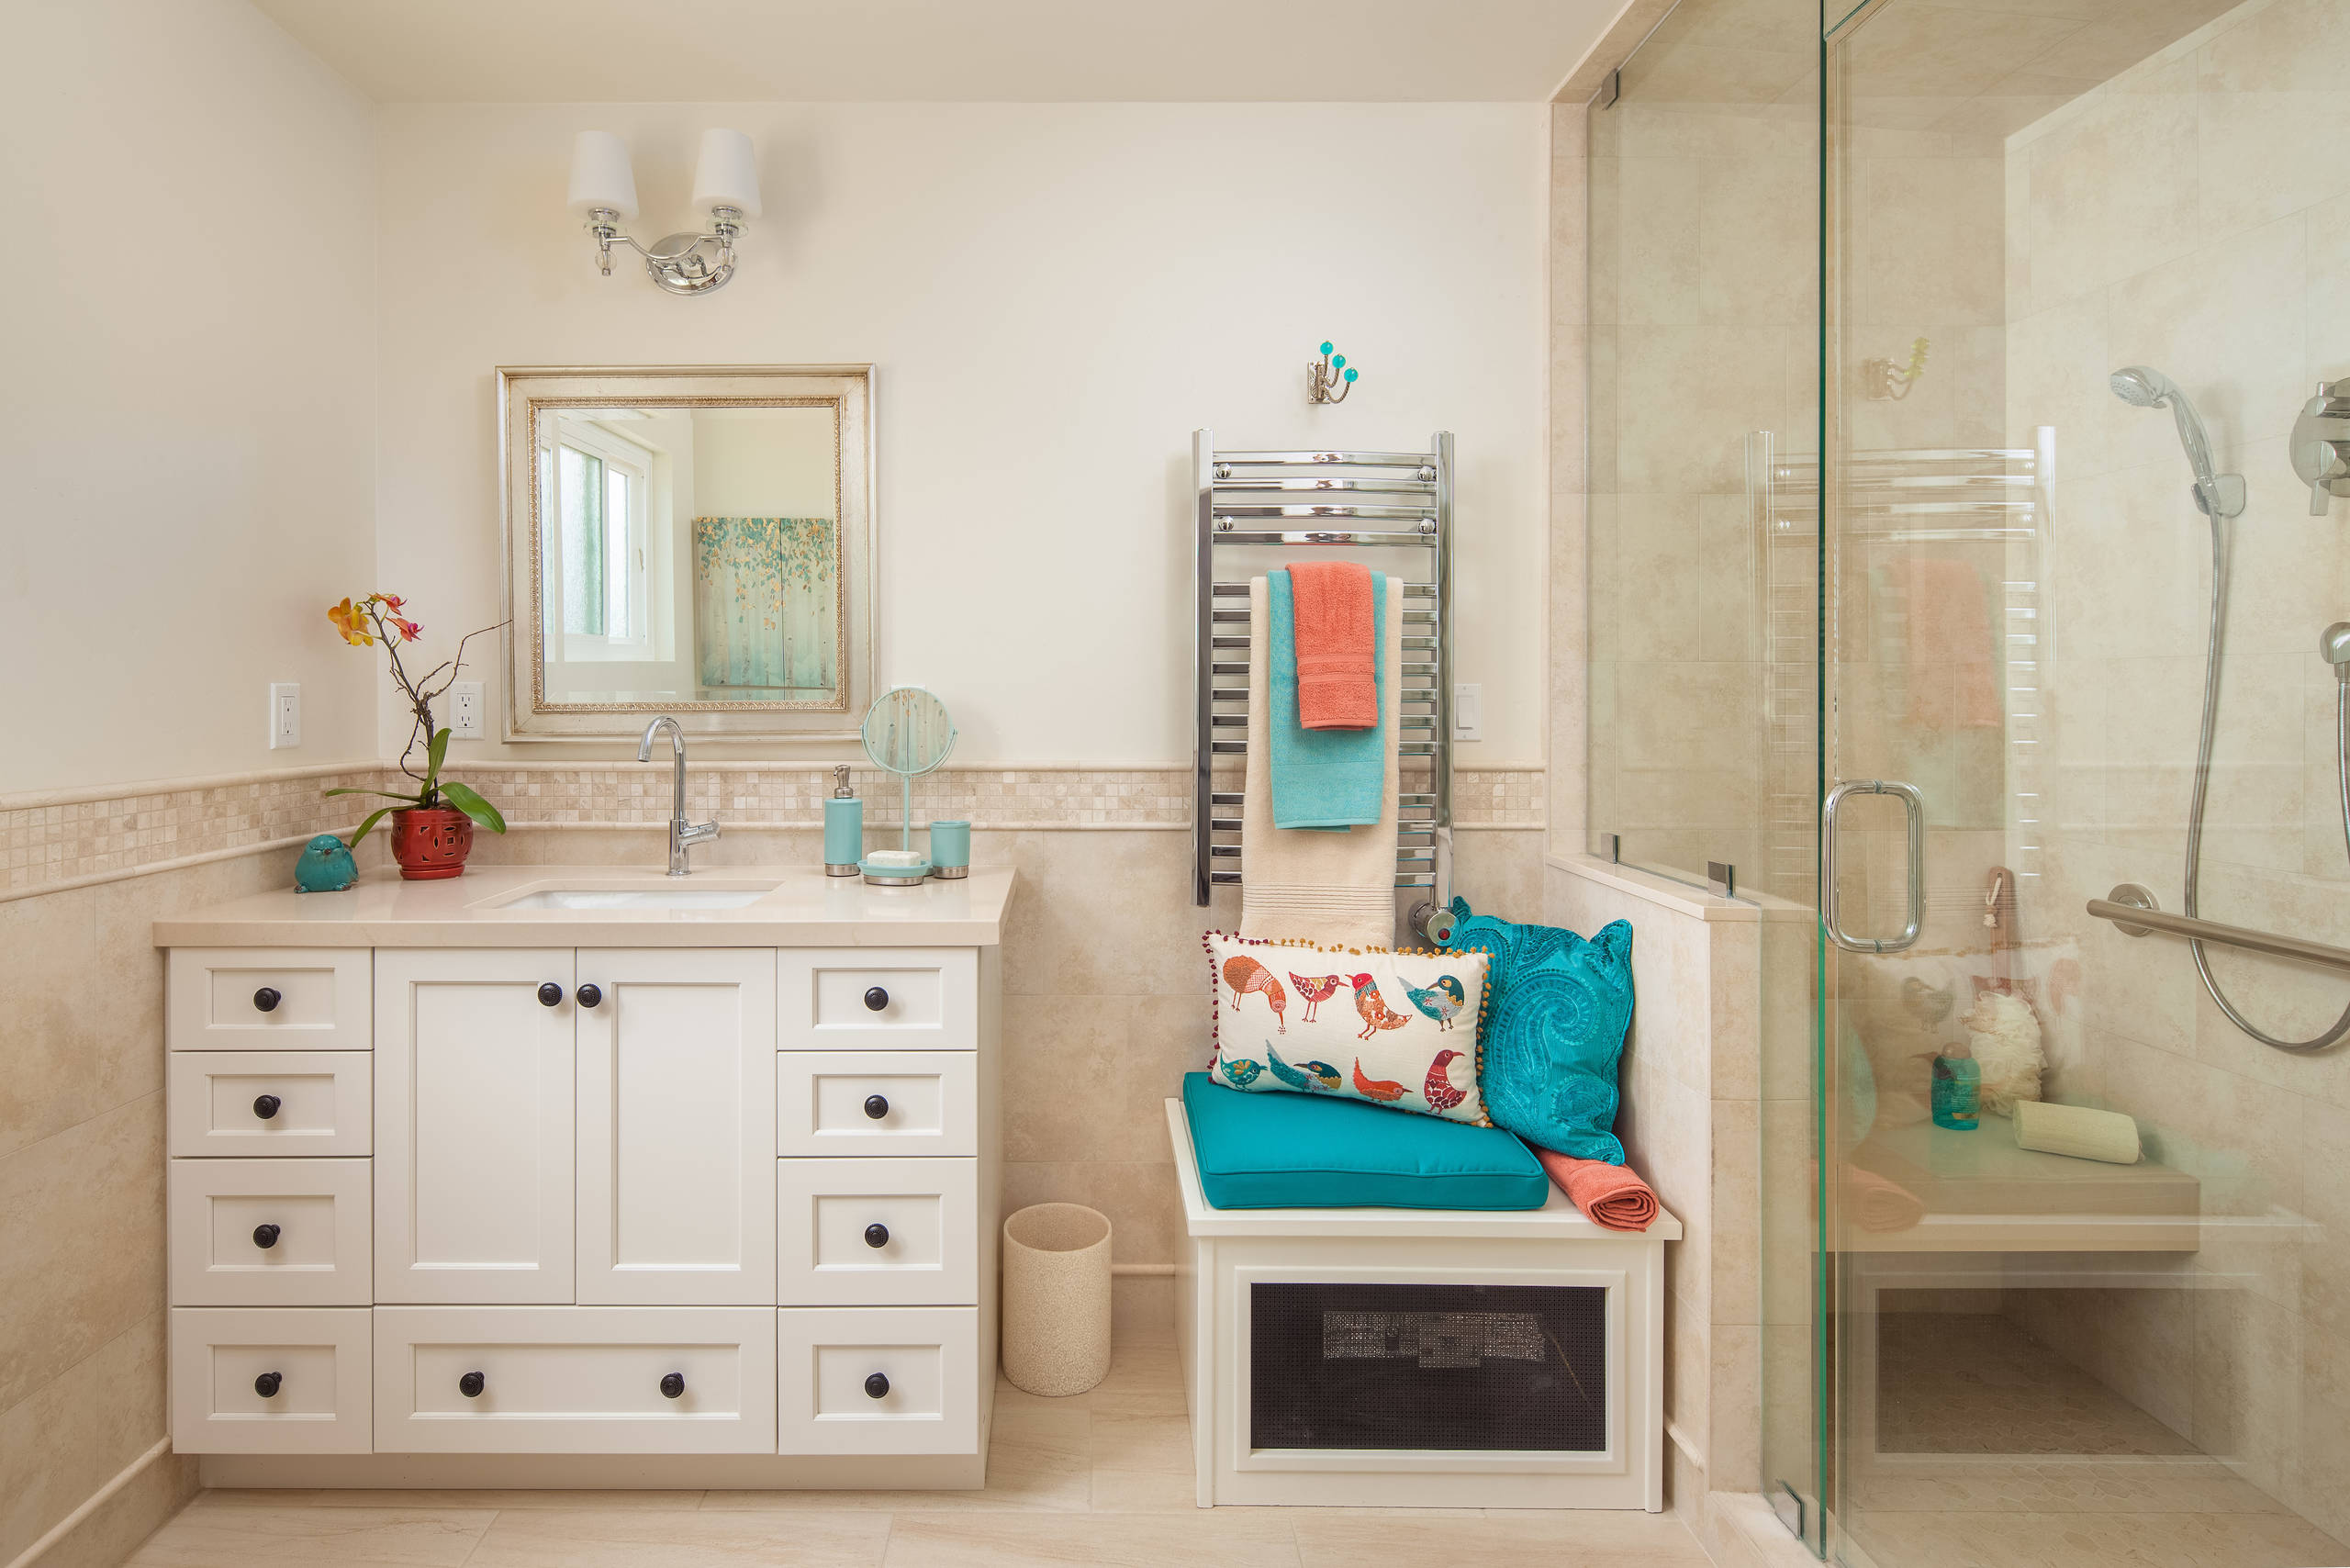 Spa-like Master Bathroom - CairnsCraft Design & Remodel